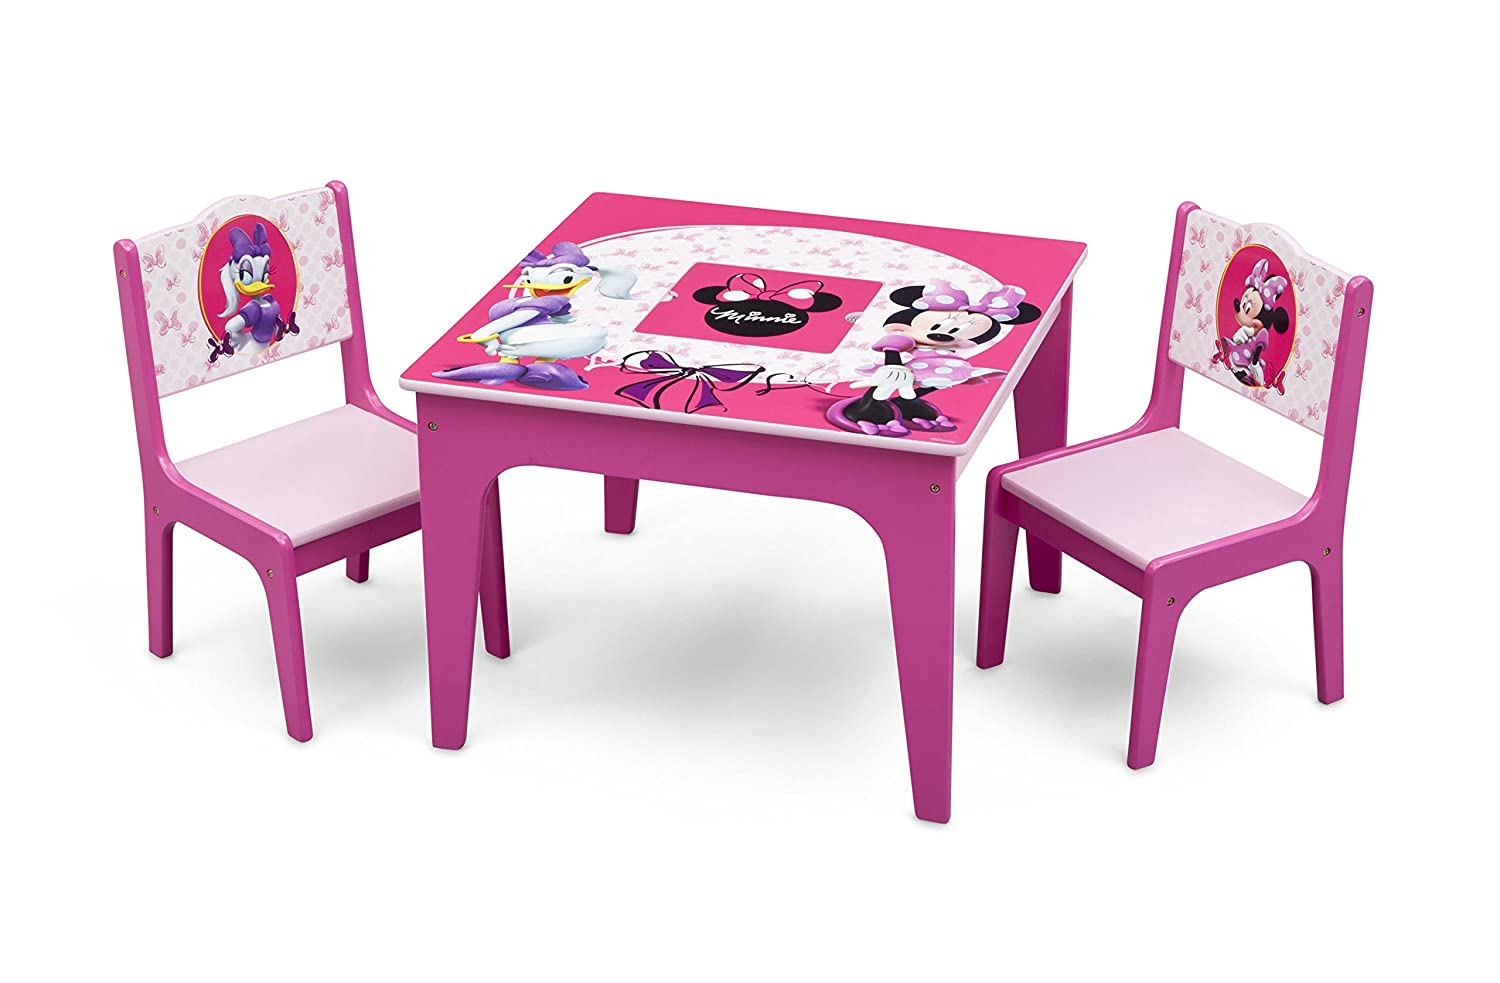 Amazon.com Delta Children Deluxe Table u0026 Chair Set with Storage Disney Minnie Mouse Baby  sc 1 st  Amazon.com : kids character table and chair set - pezcame.com